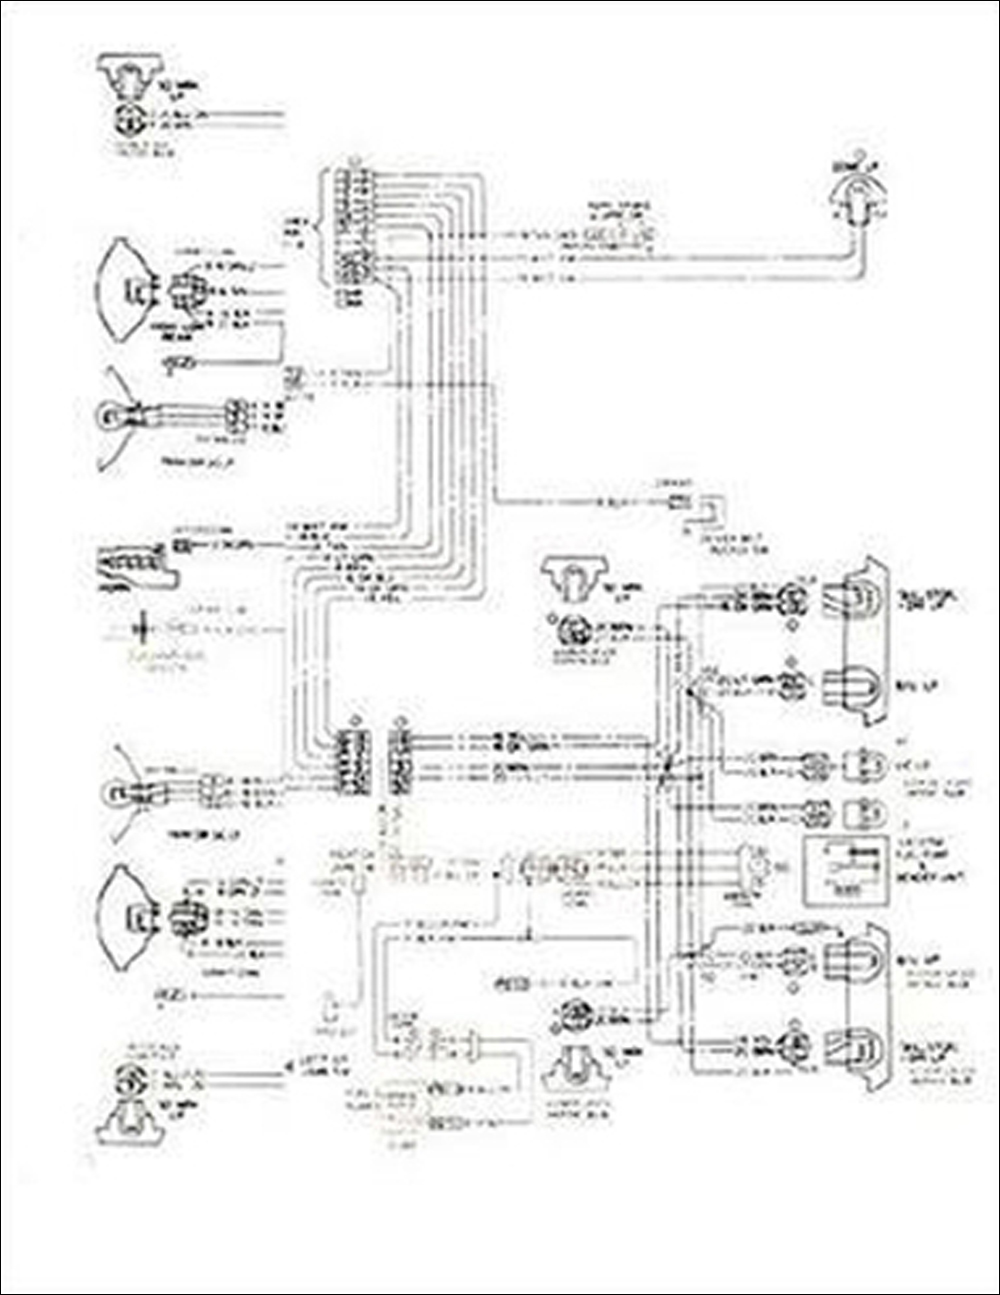 1977 C10 Alternator Wiring Diagram Detailed Schematics 350 Chevy As Well 1994 Truck Schematic Diagrams 1970